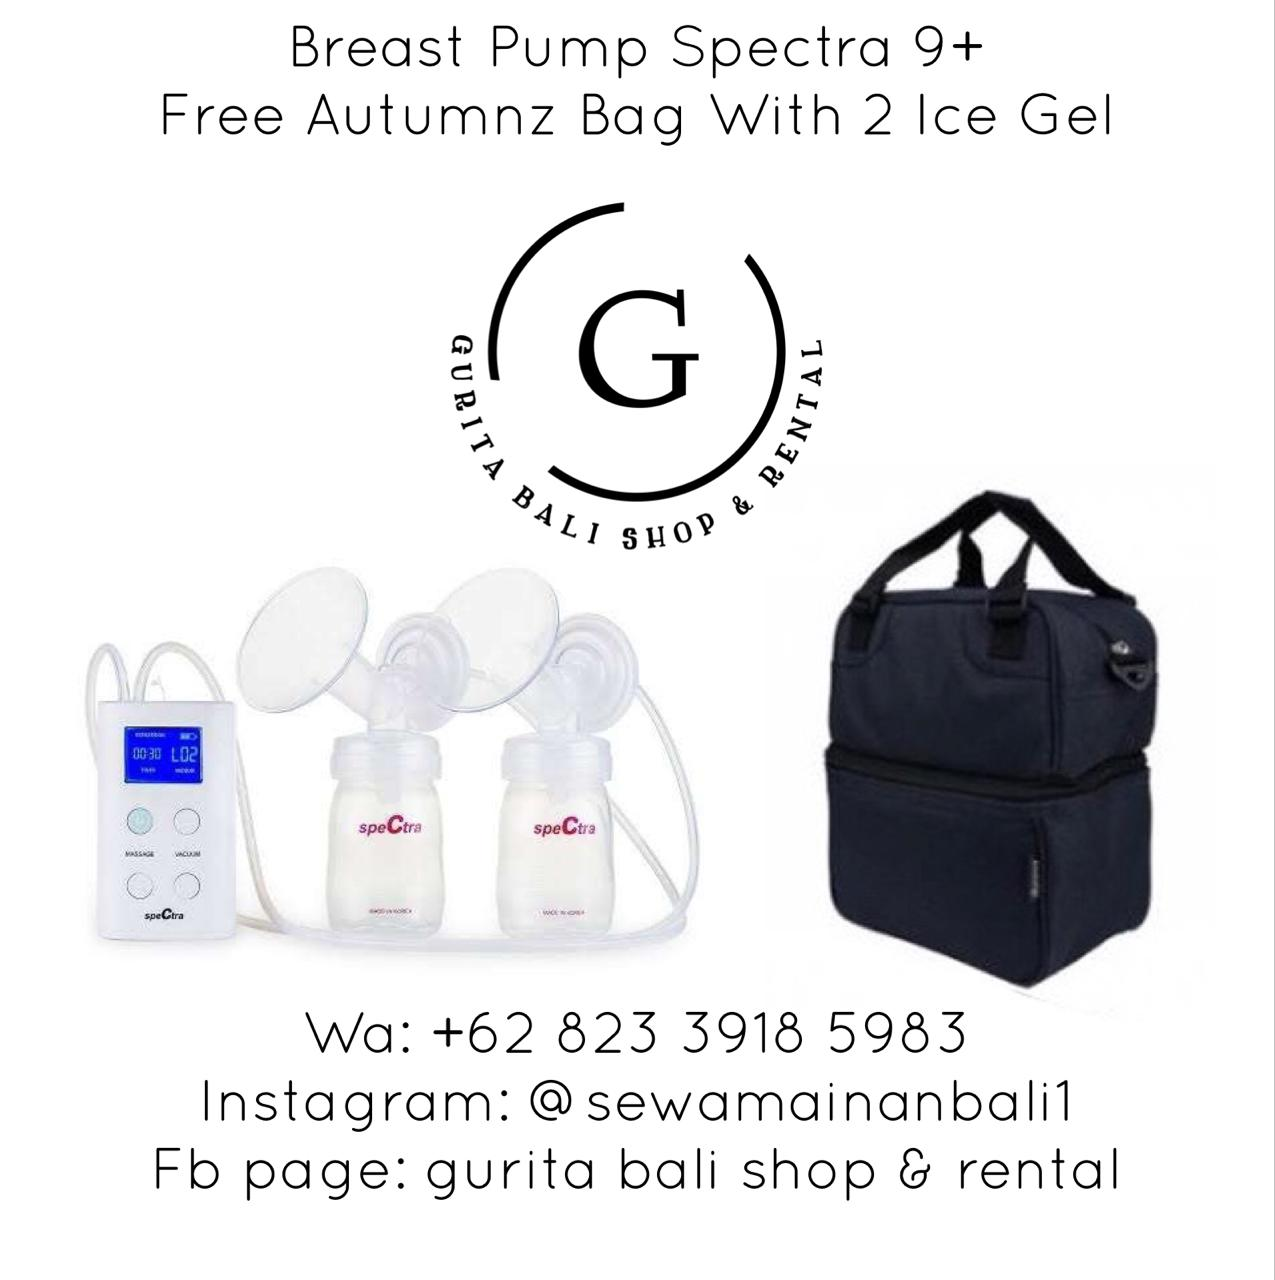 BREAST PUMP SPECTRA 9+ (C)